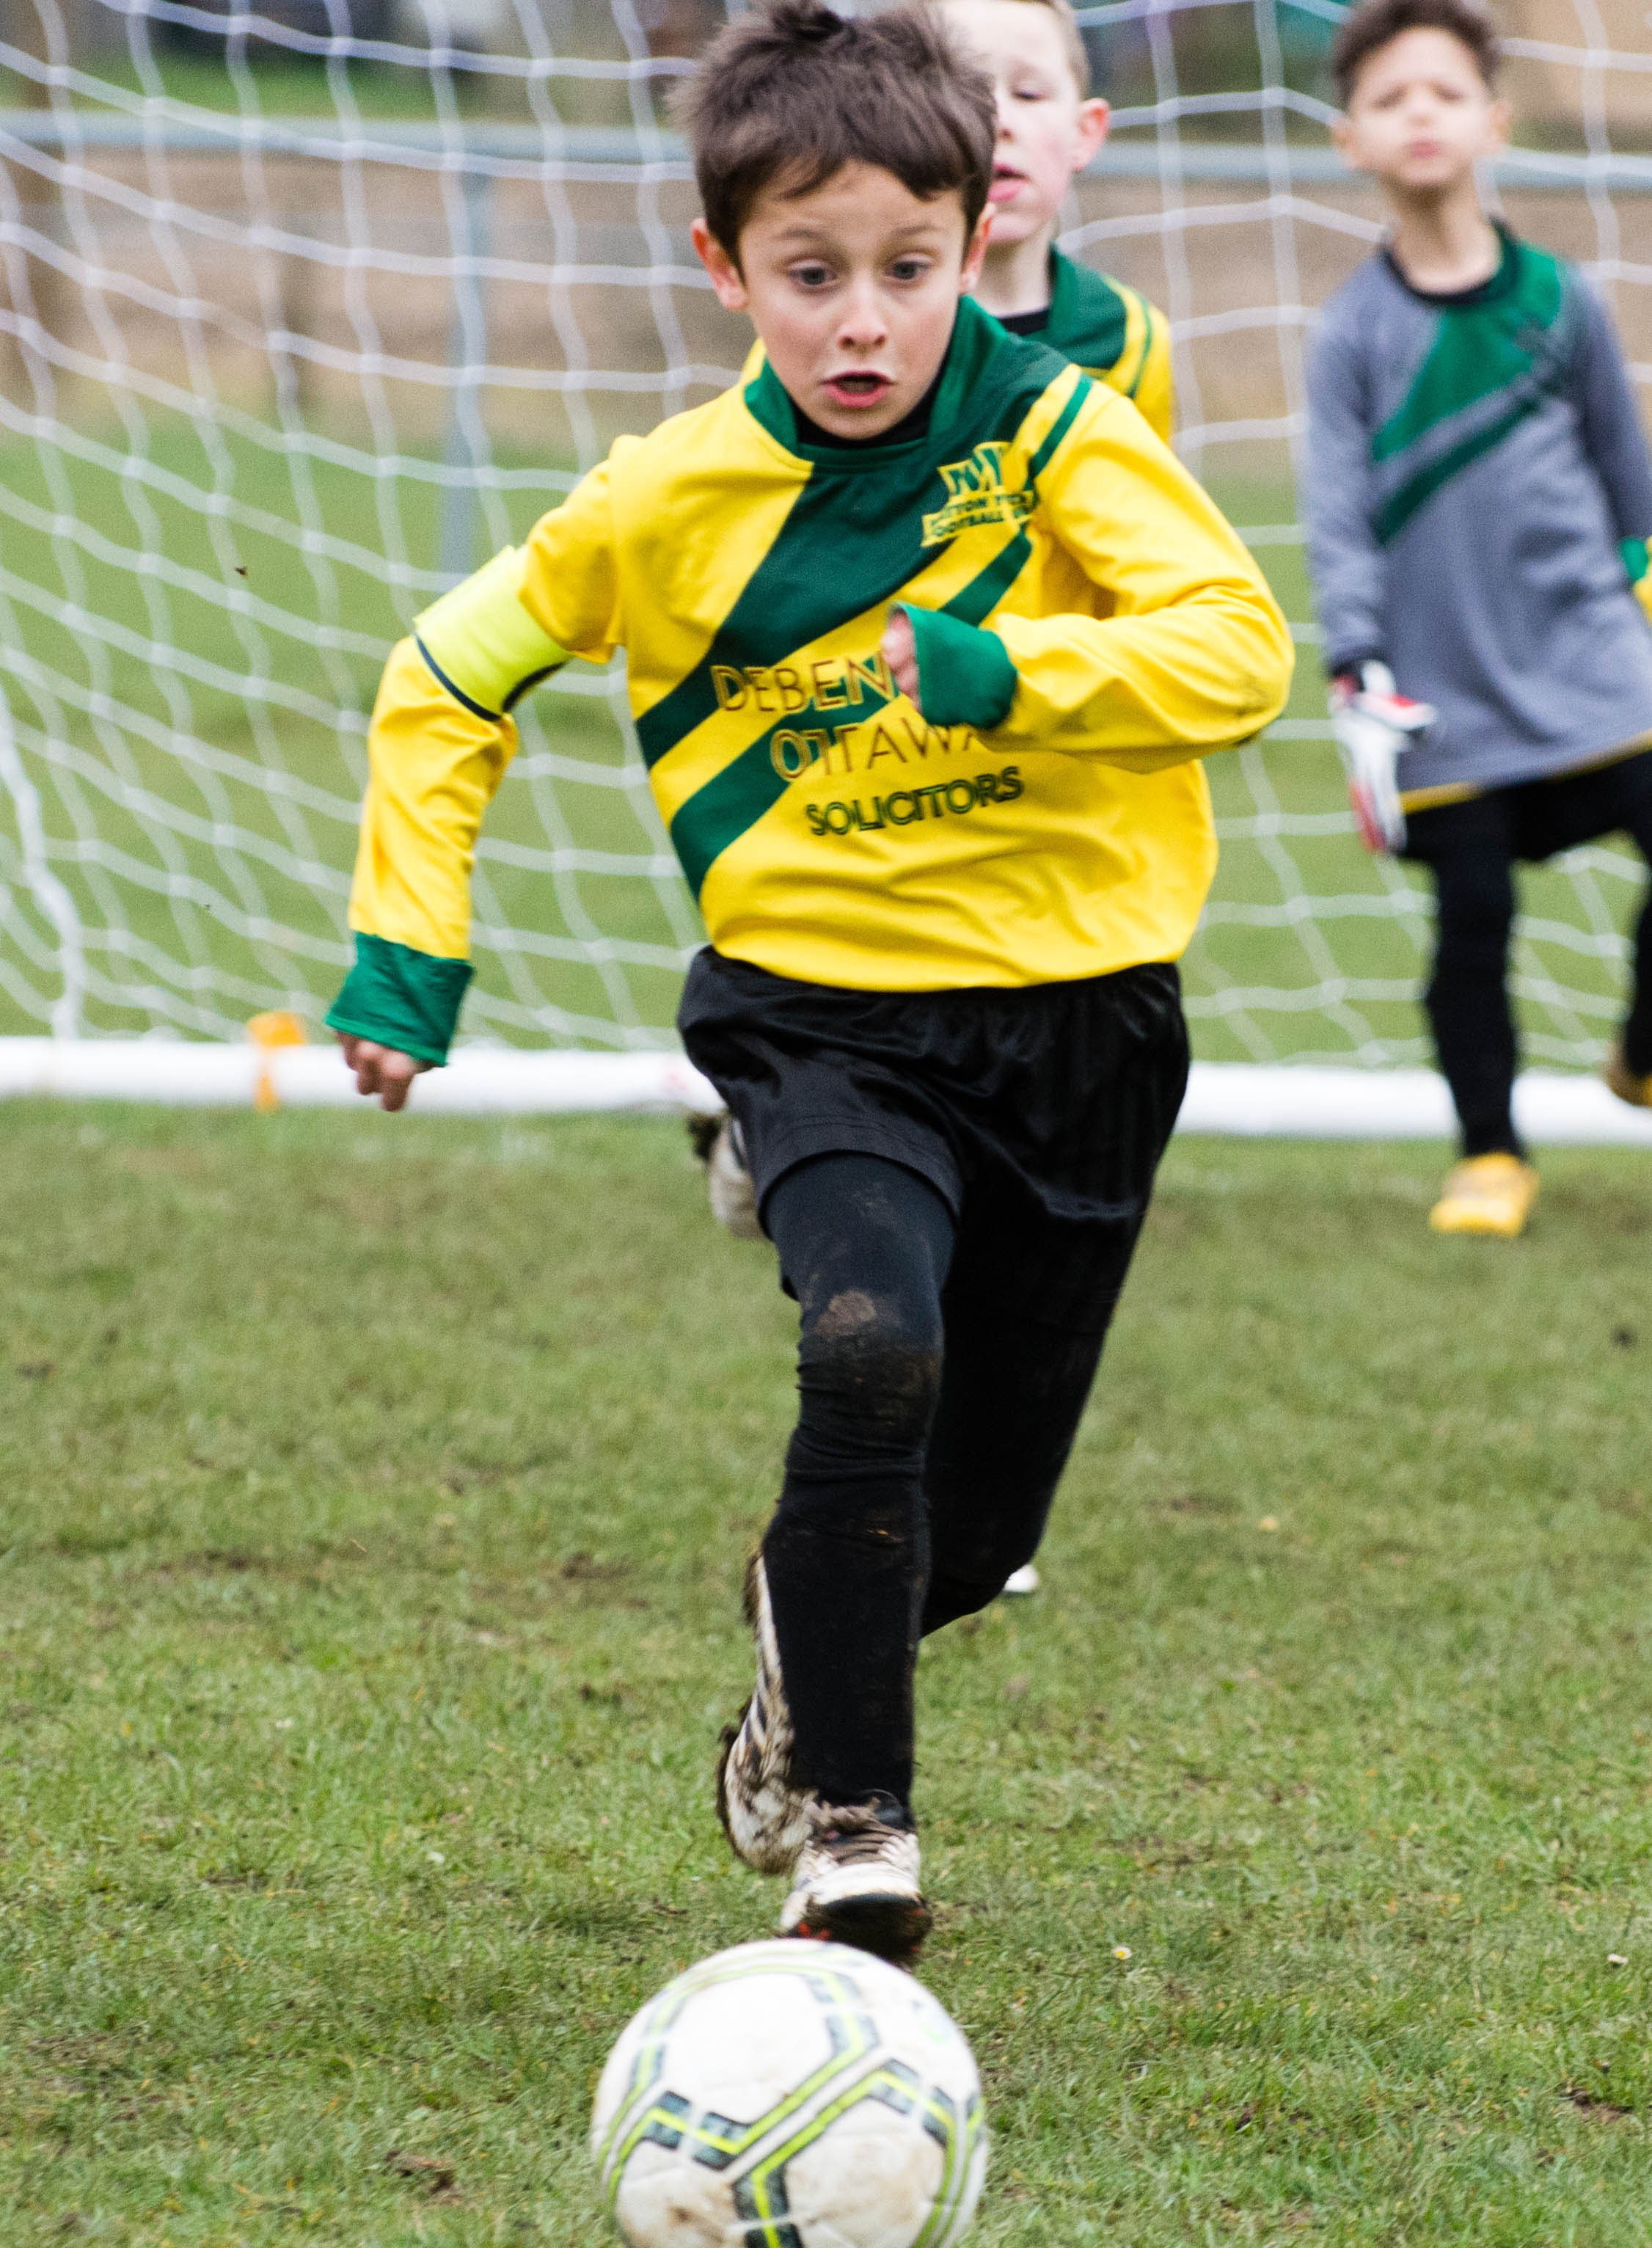 Watton Youth Player